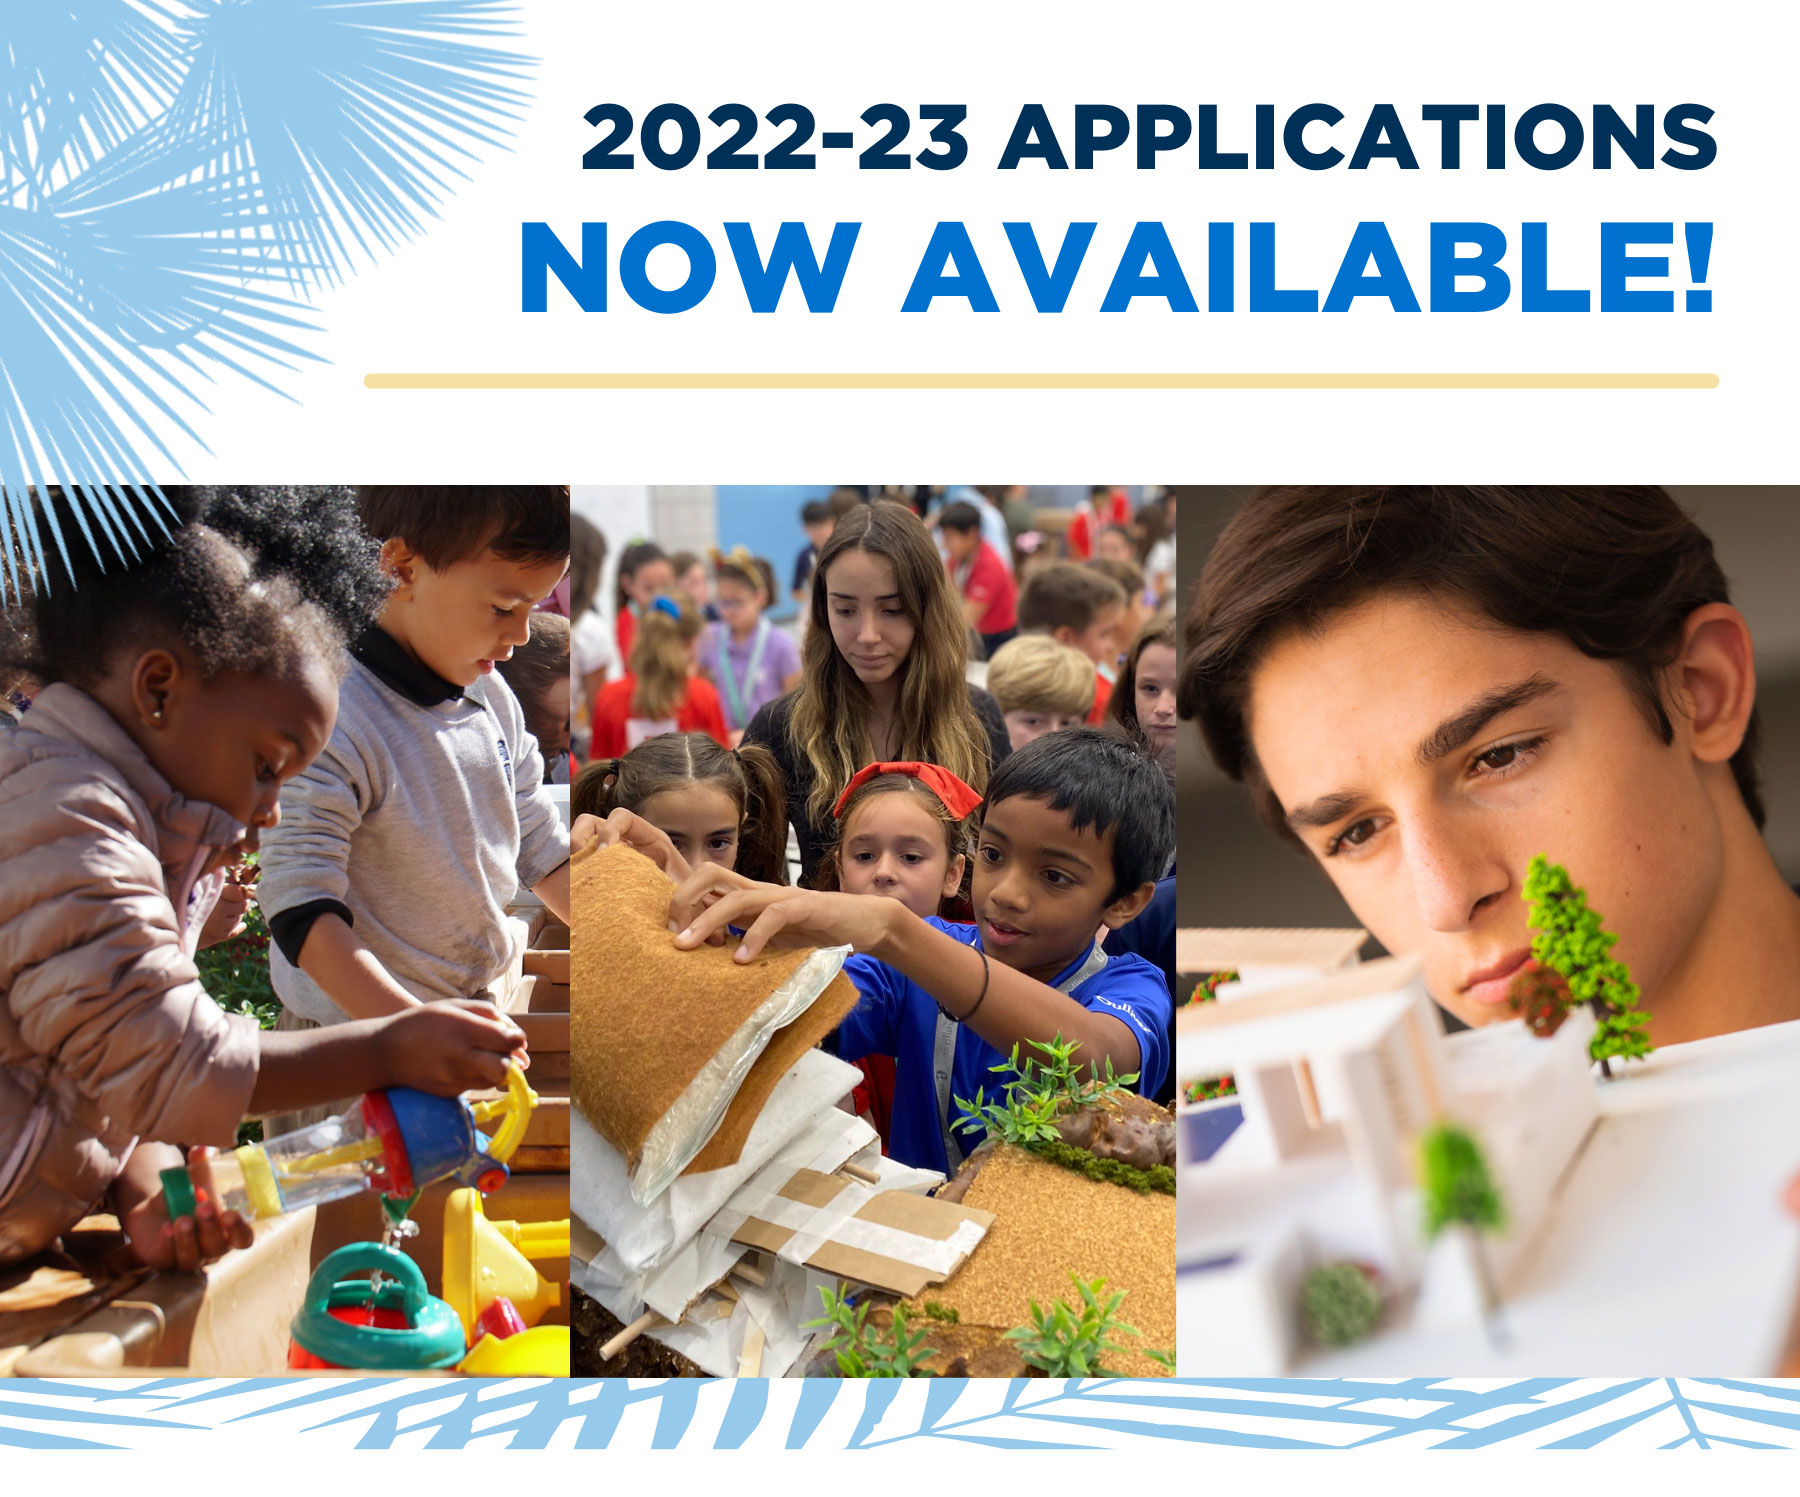 2022-23 Applications are now available